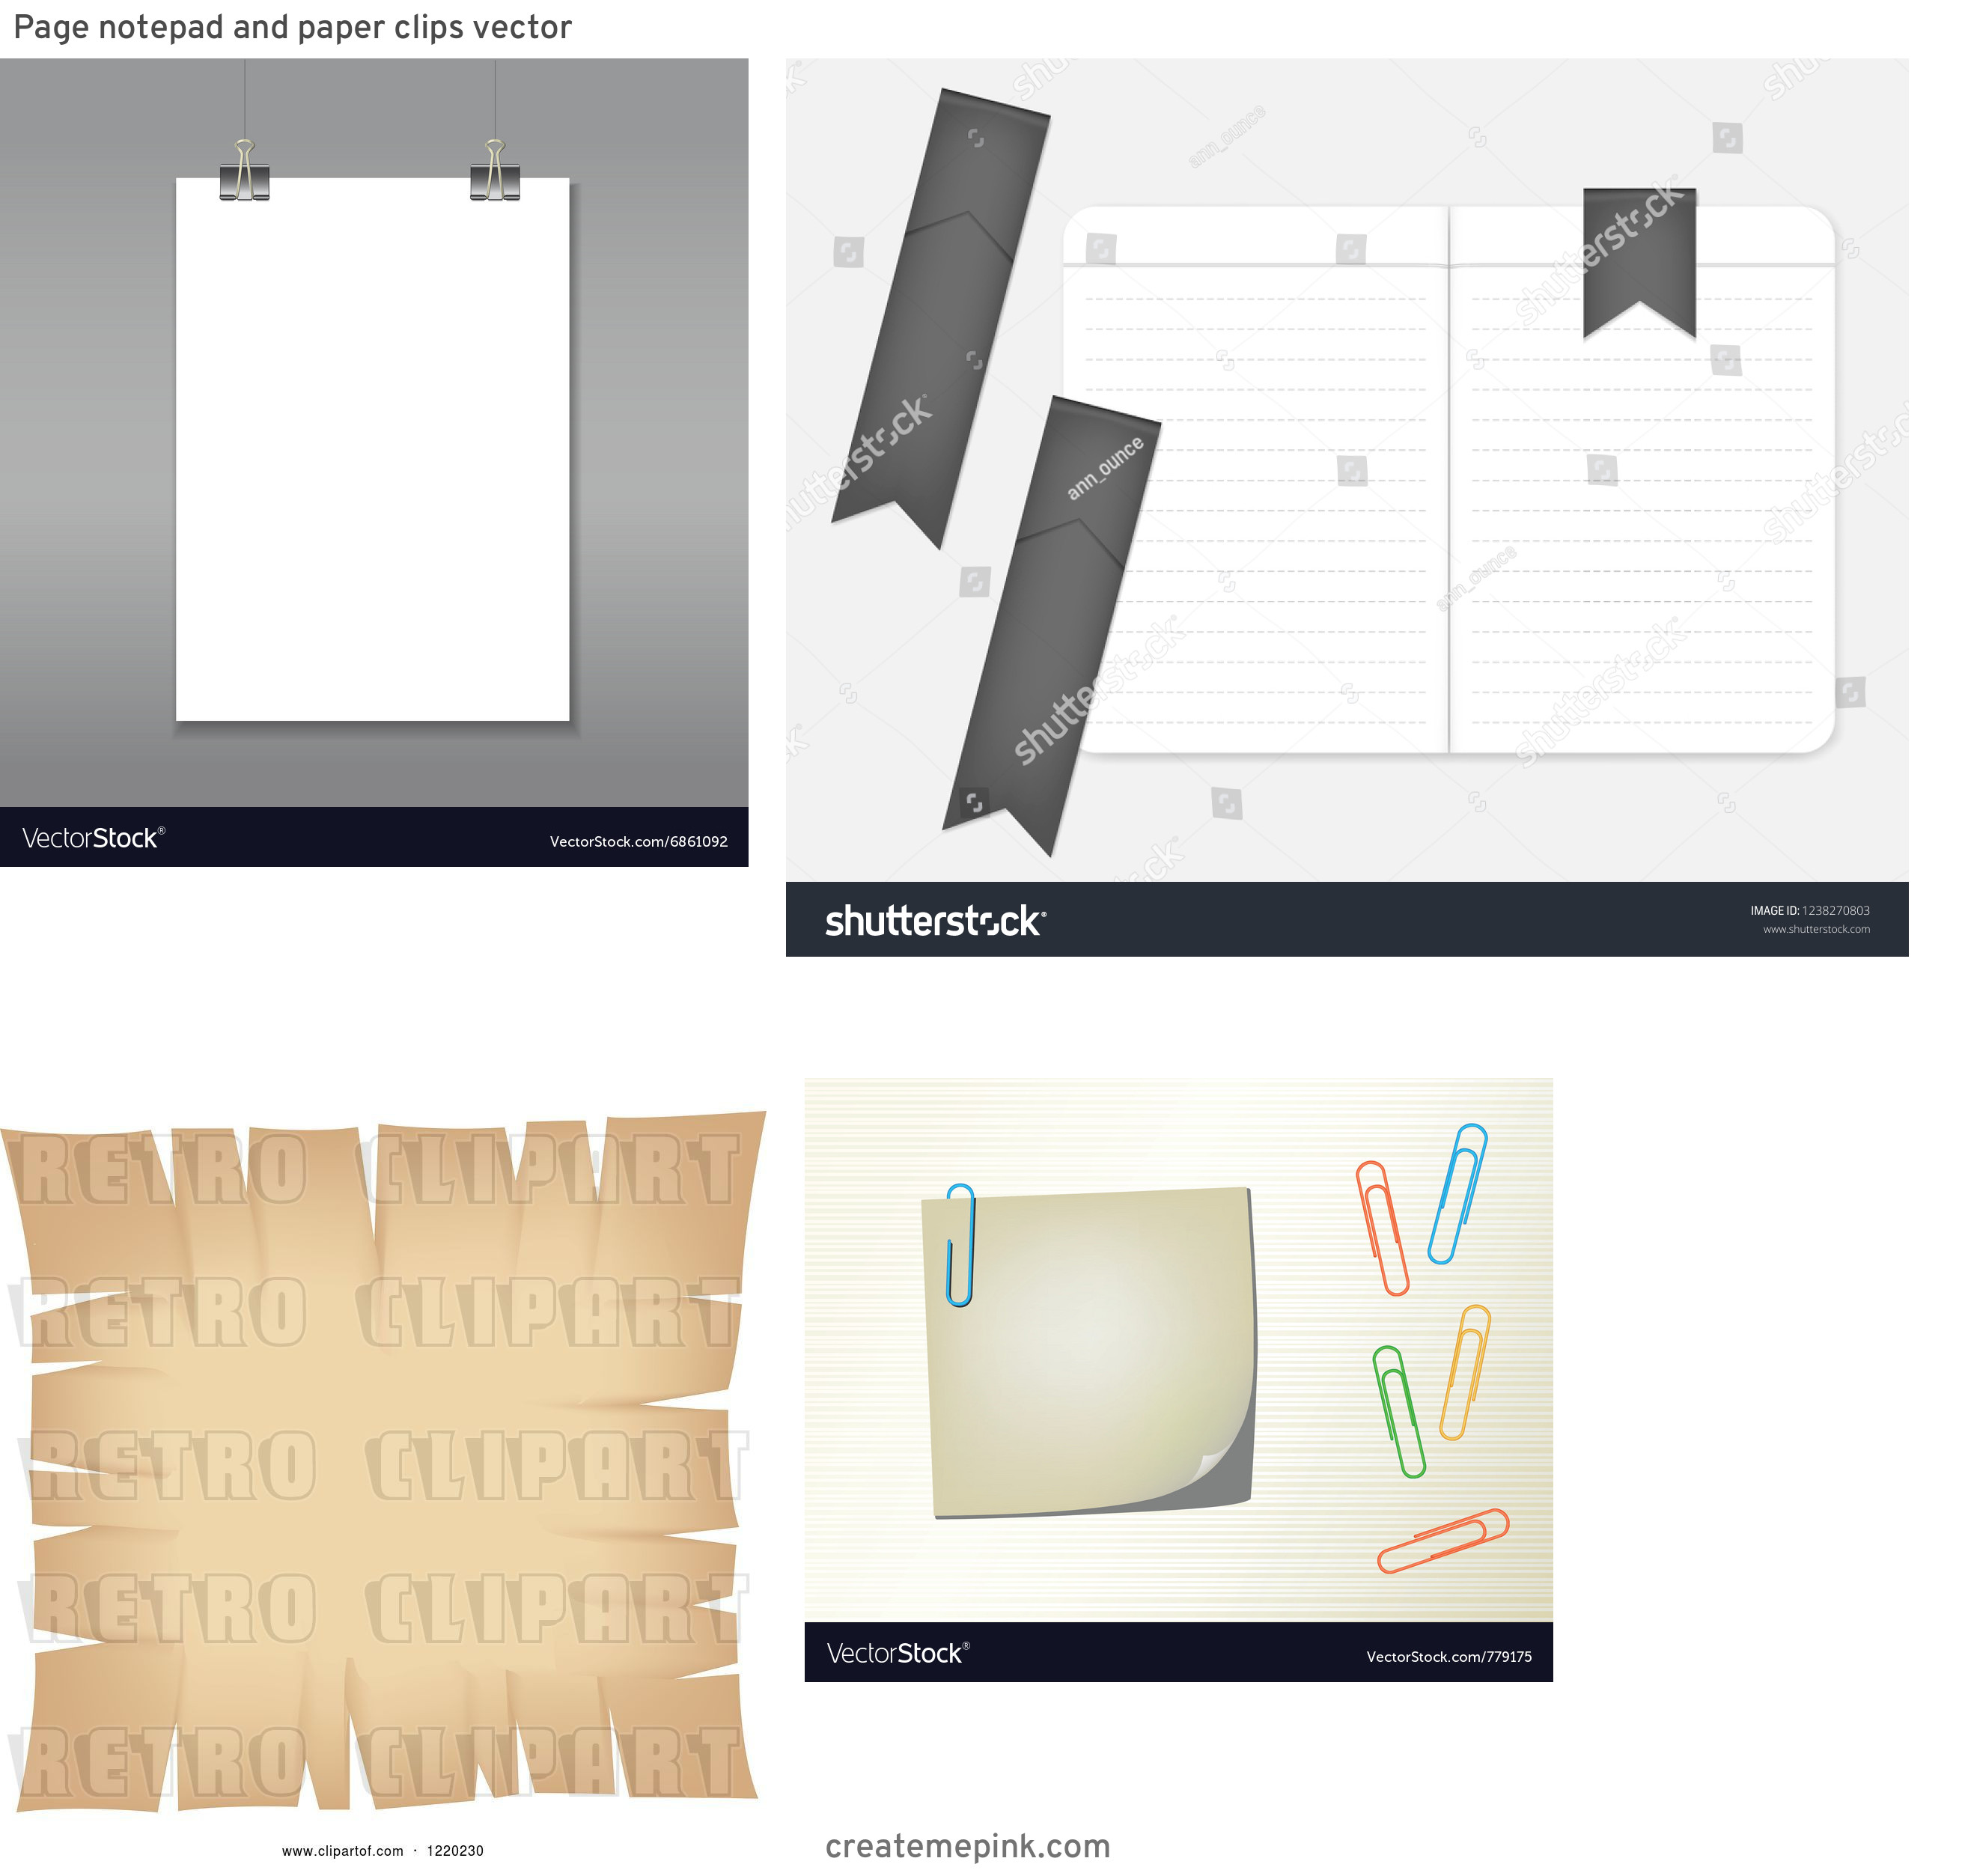 Vector Paper Clip On Page: Page Notepad And Paper Clips Vector